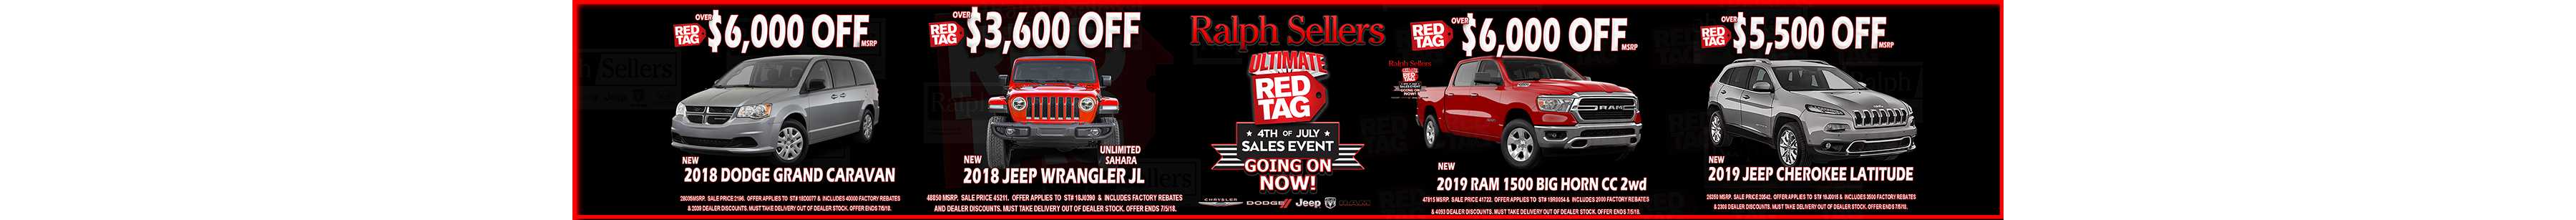 Used Car Dealerships In Baton Rouge >> New RAM, Jeep, Dodge, Chrysler and Used Car Dealer Serving ...